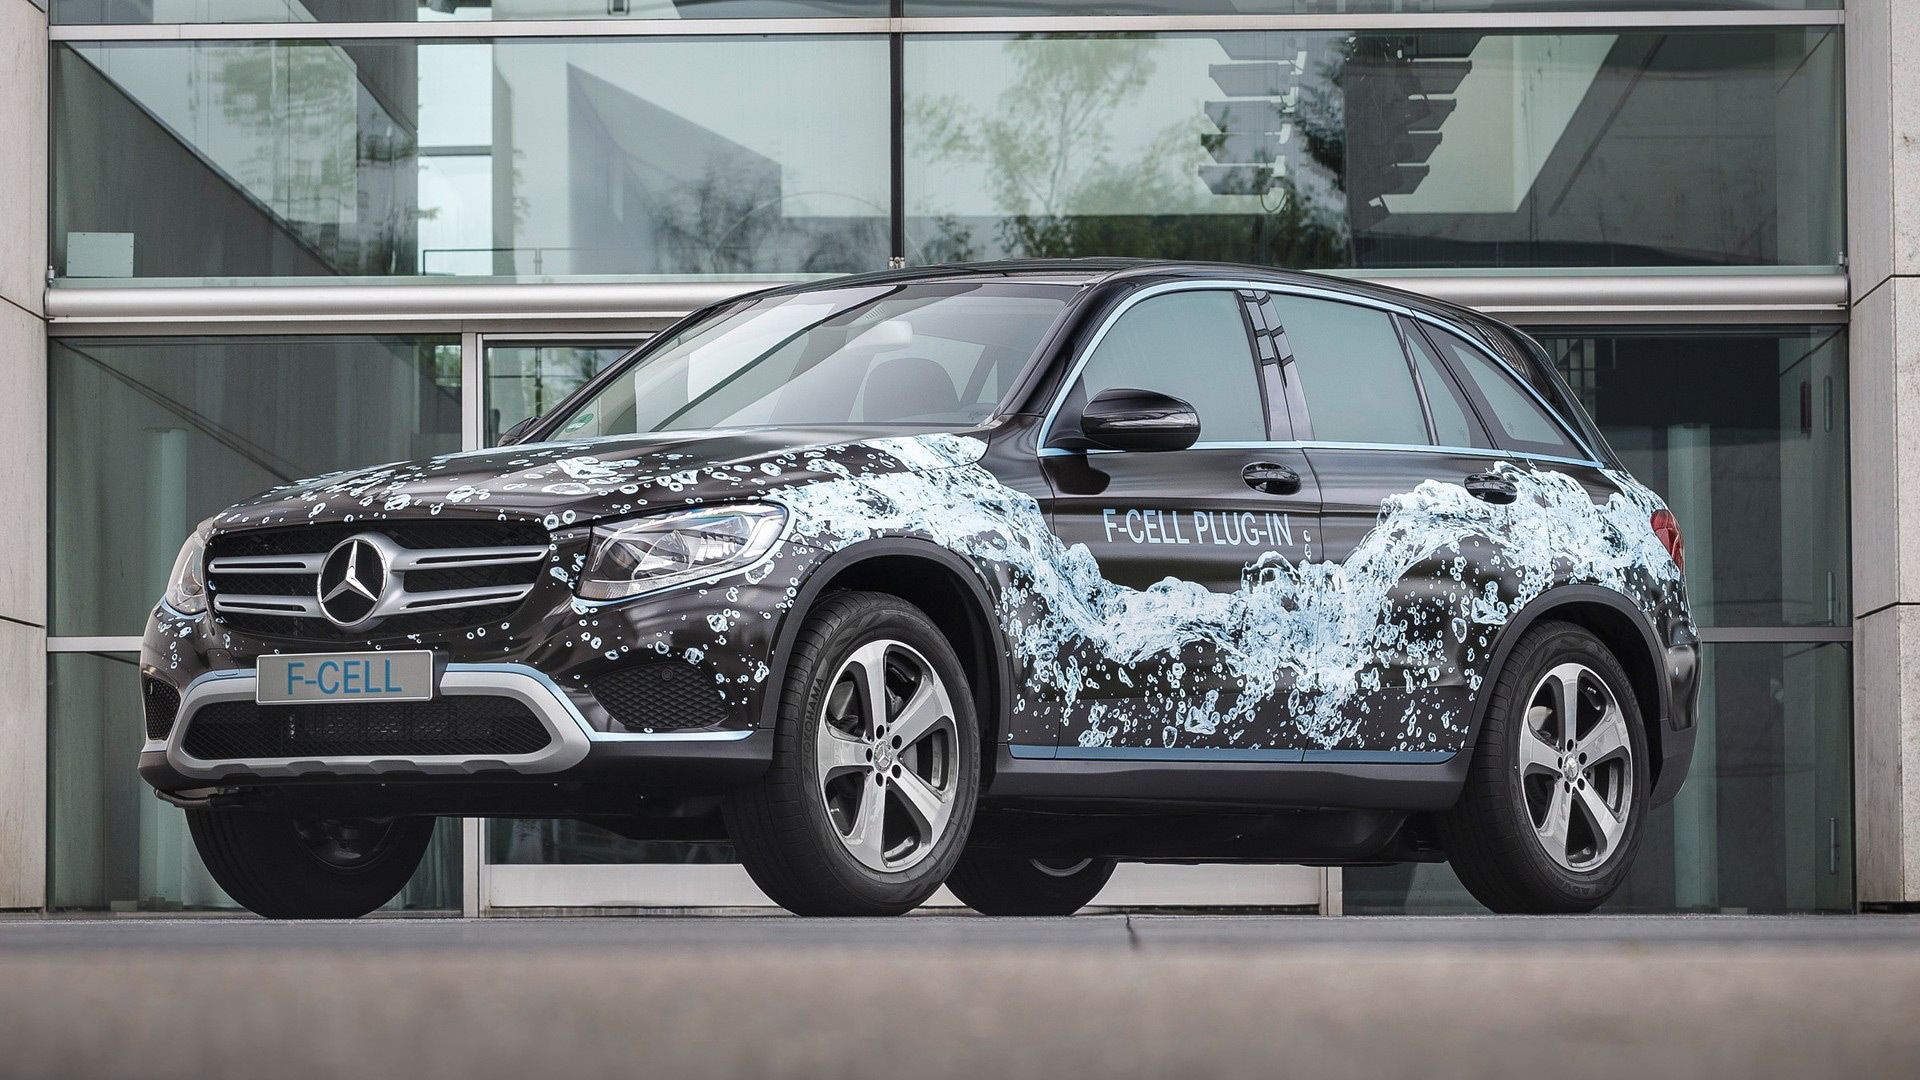 Mercedes-Benz GLC F-Cell prototype